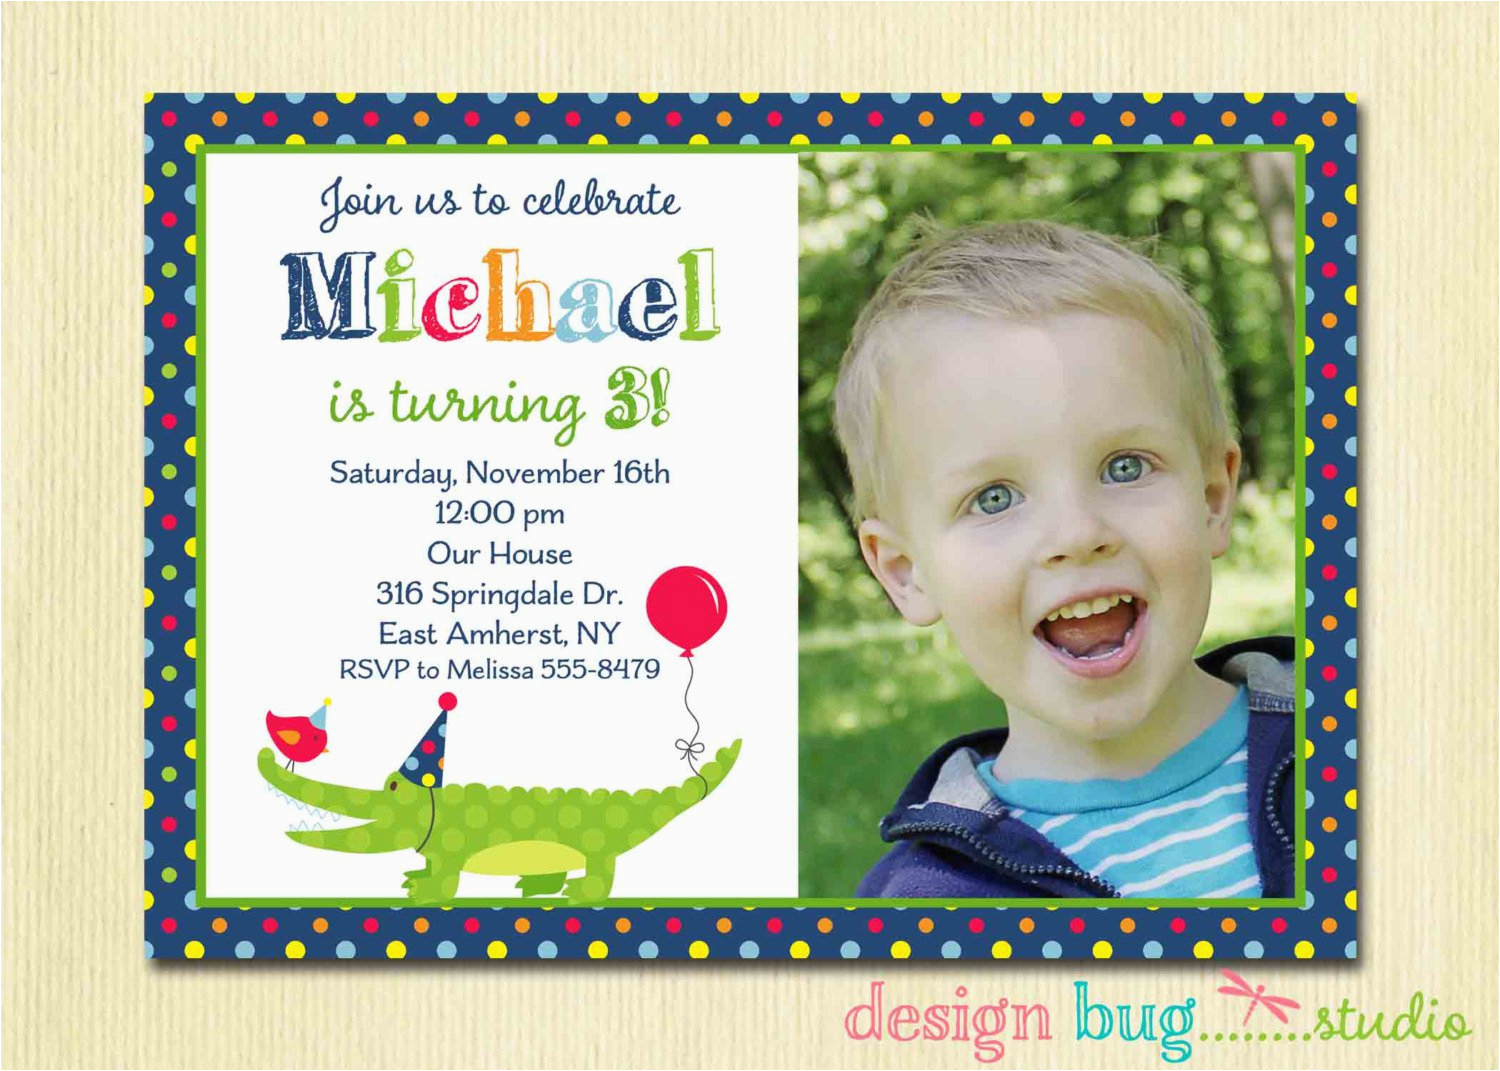 Birthday Party Invitation Wording For 3 Year Old Invitations Best Ideas